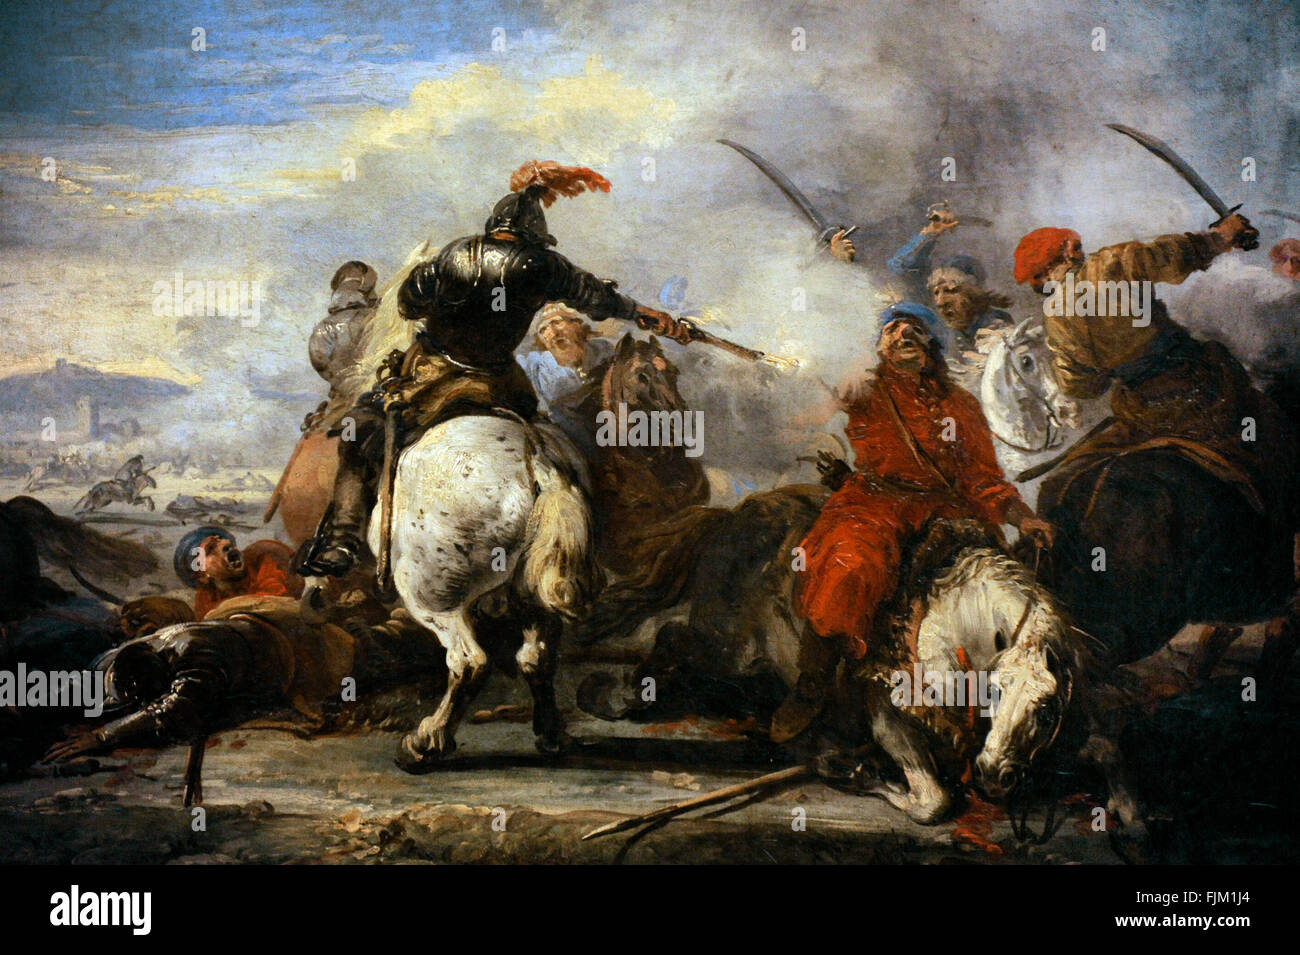 Jacques Courtois called Il Borgognone (1621-1675). French painter. Cavalry Encounter, second half of the 17th century. - Stock Image